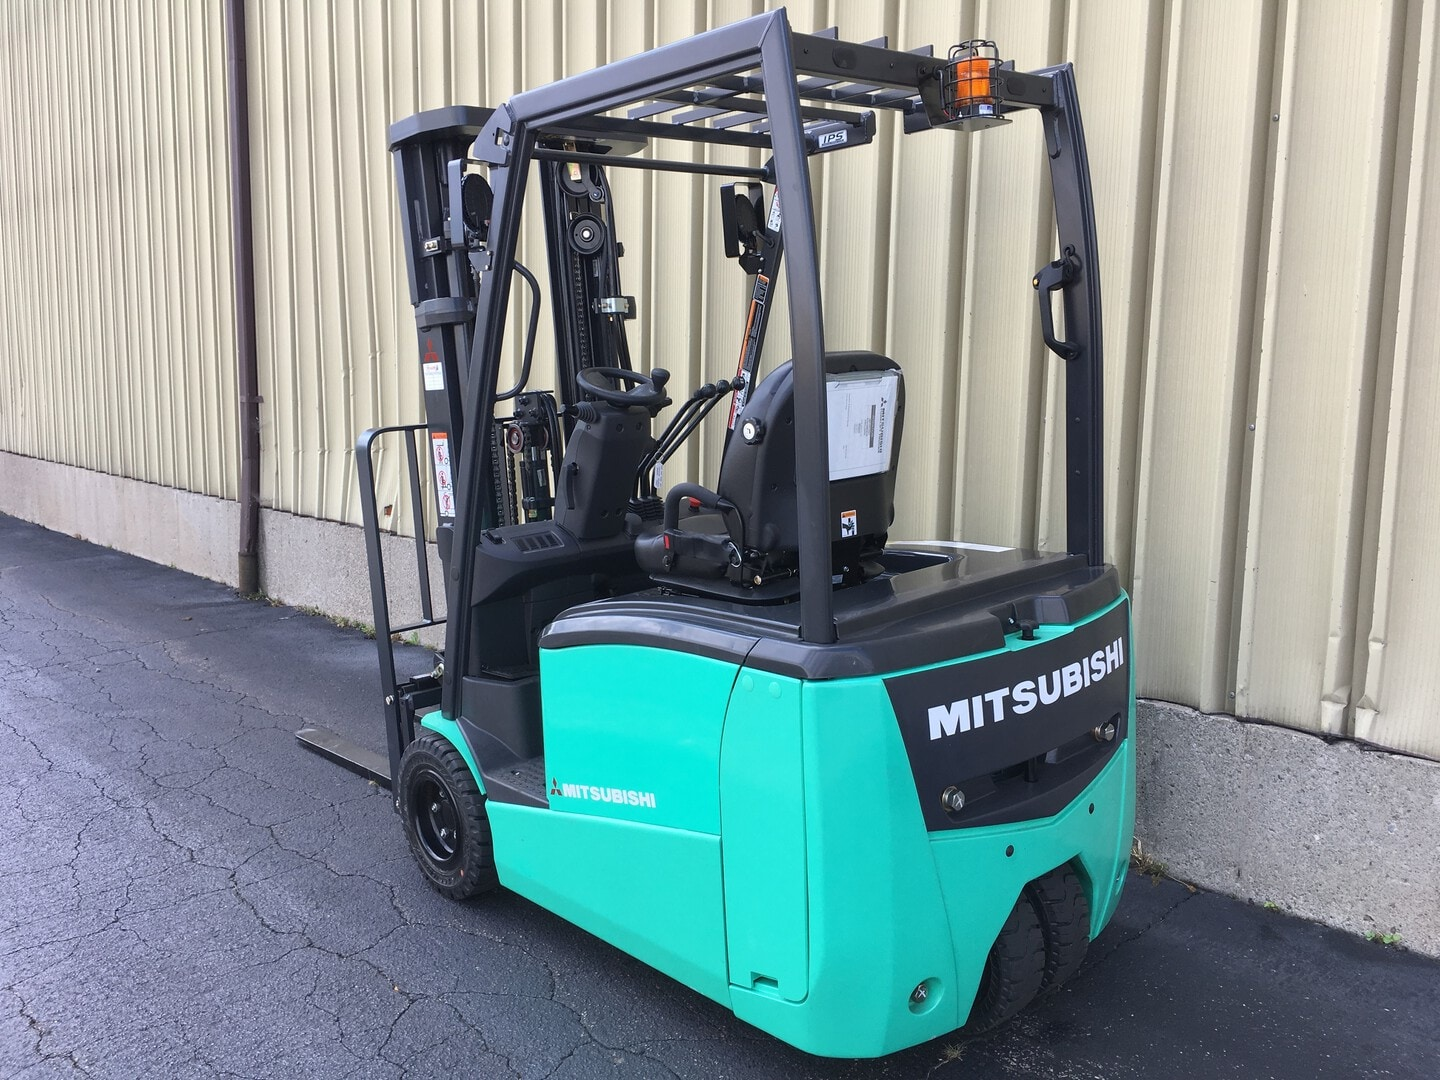 caterpillar america fresh your forklift trucks lift car of for lovely forklifts mitsubishi modern